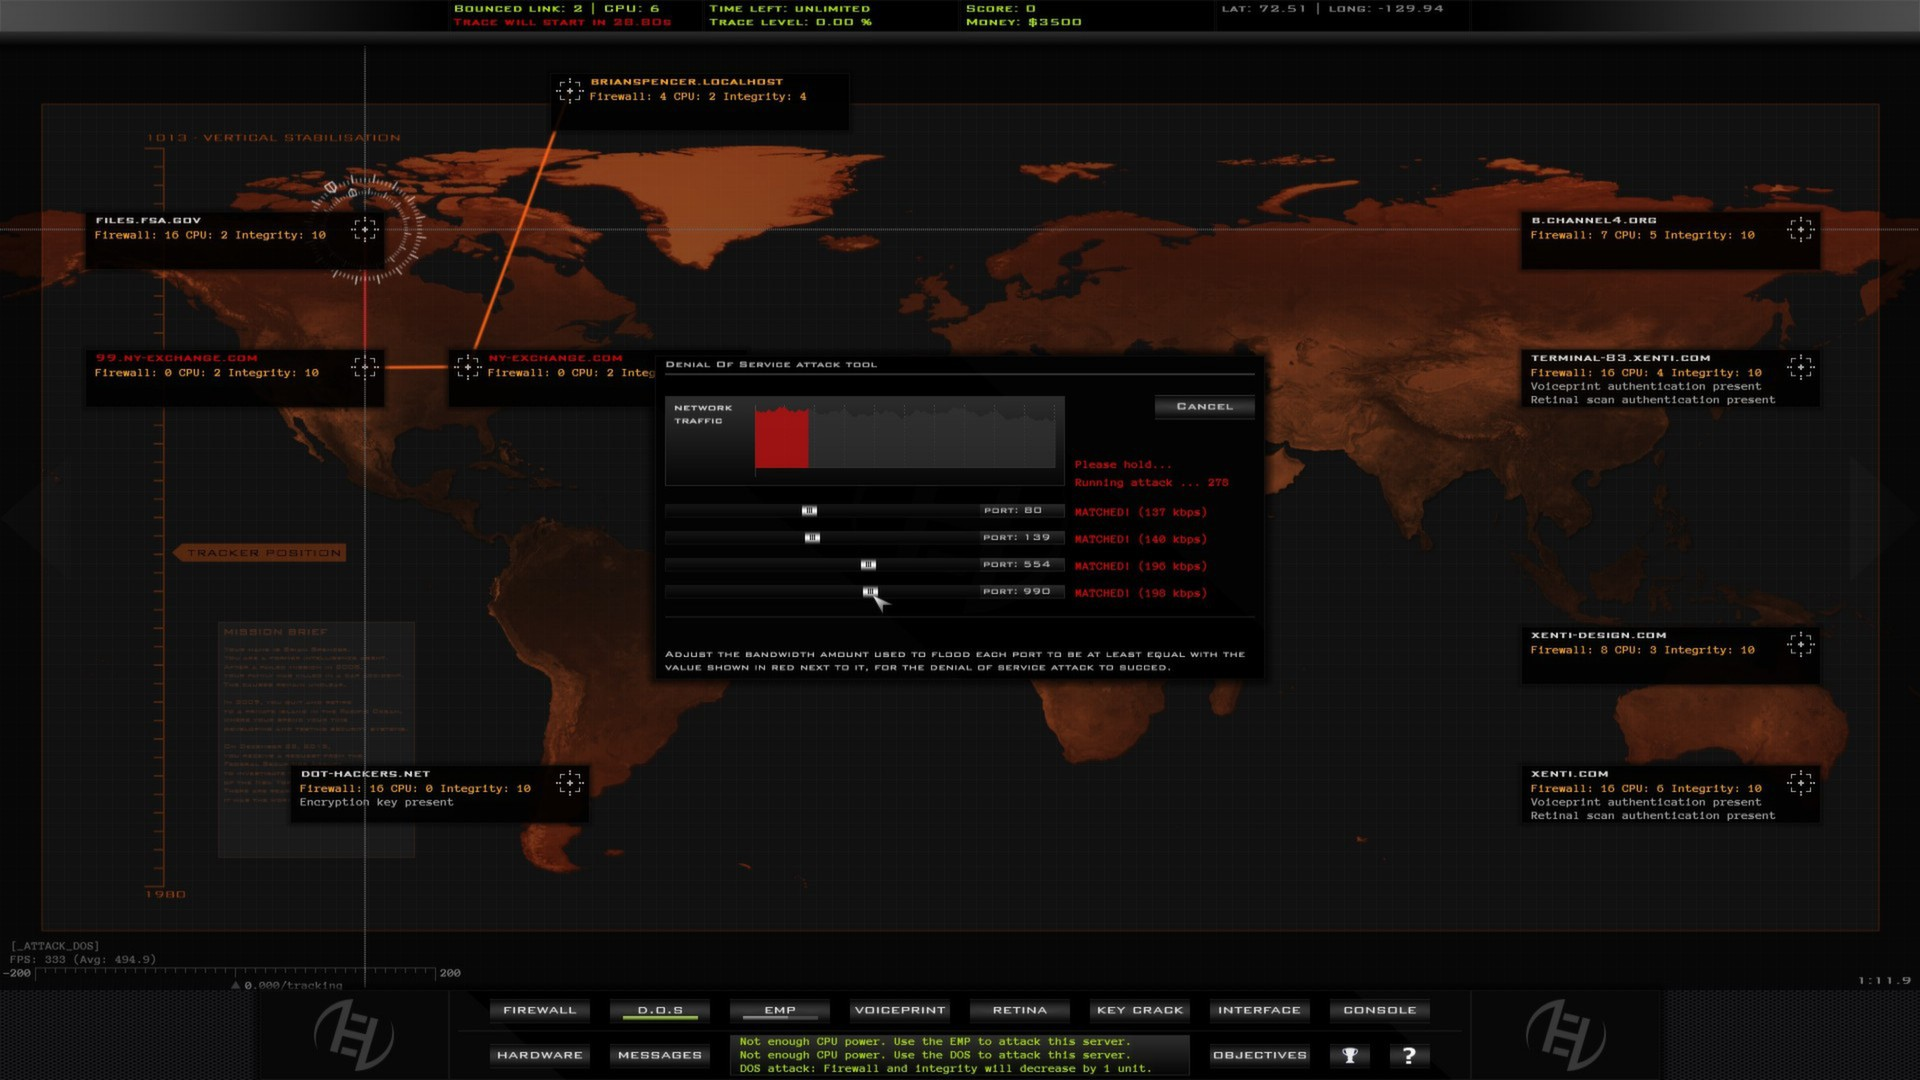 Hacker Evolution: Duality - Inception Part 1 2012 pc game Img-4